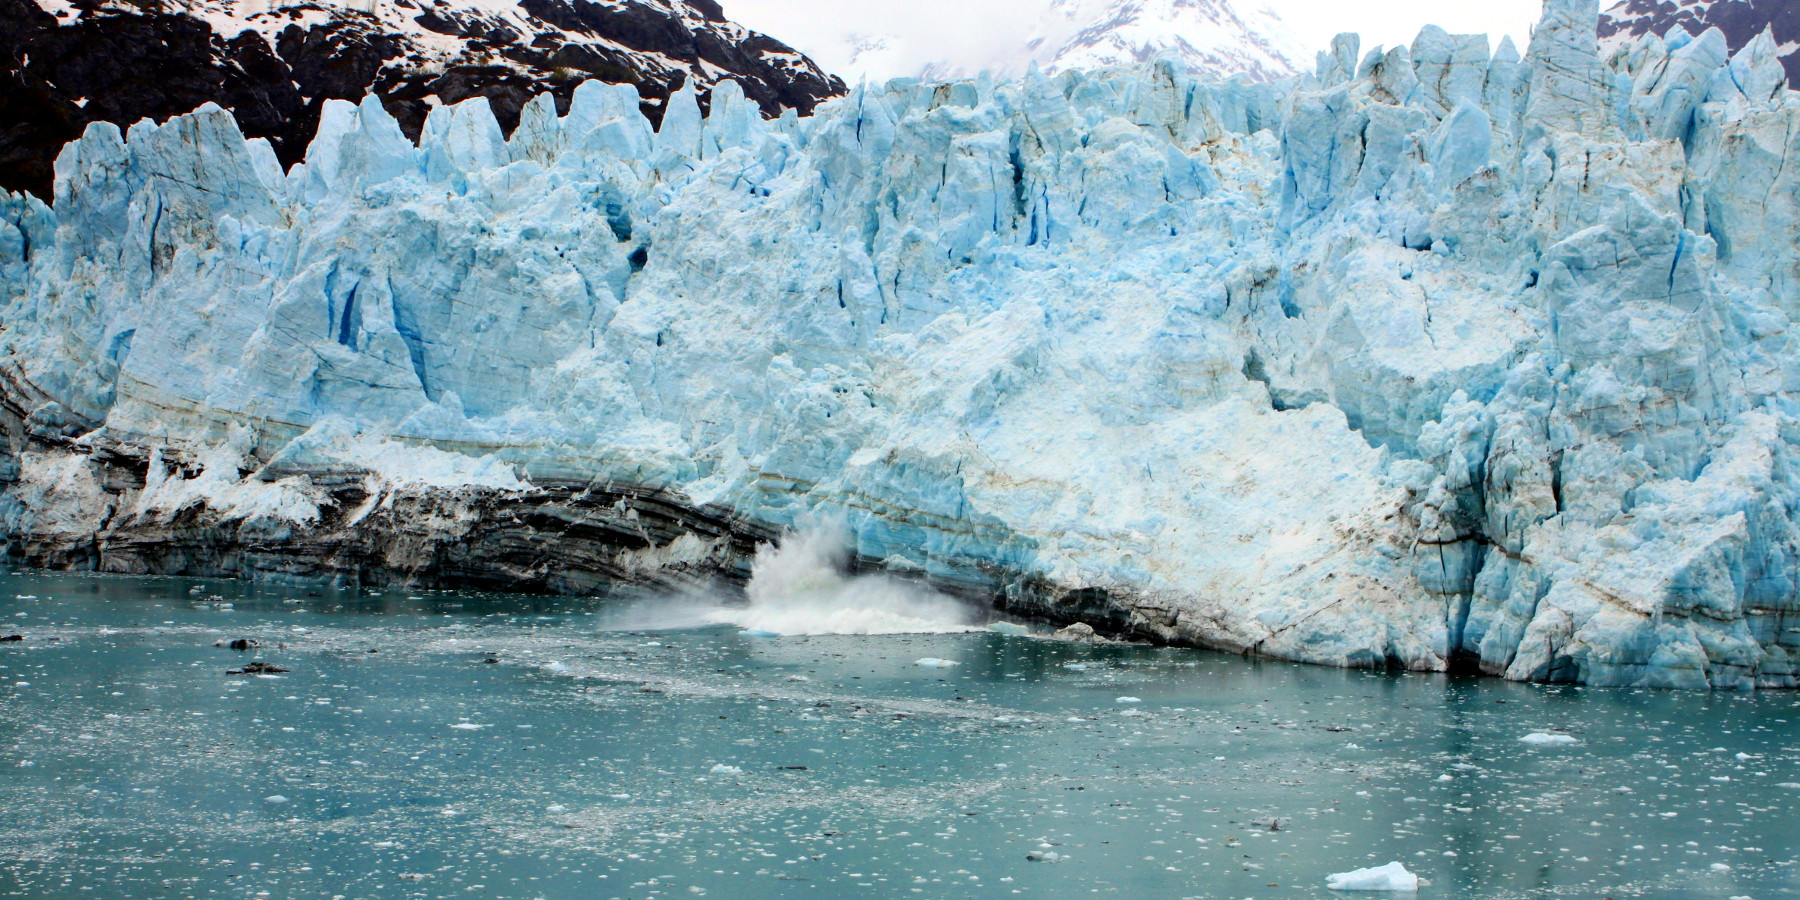 Glacier melting in Alaska - 2011